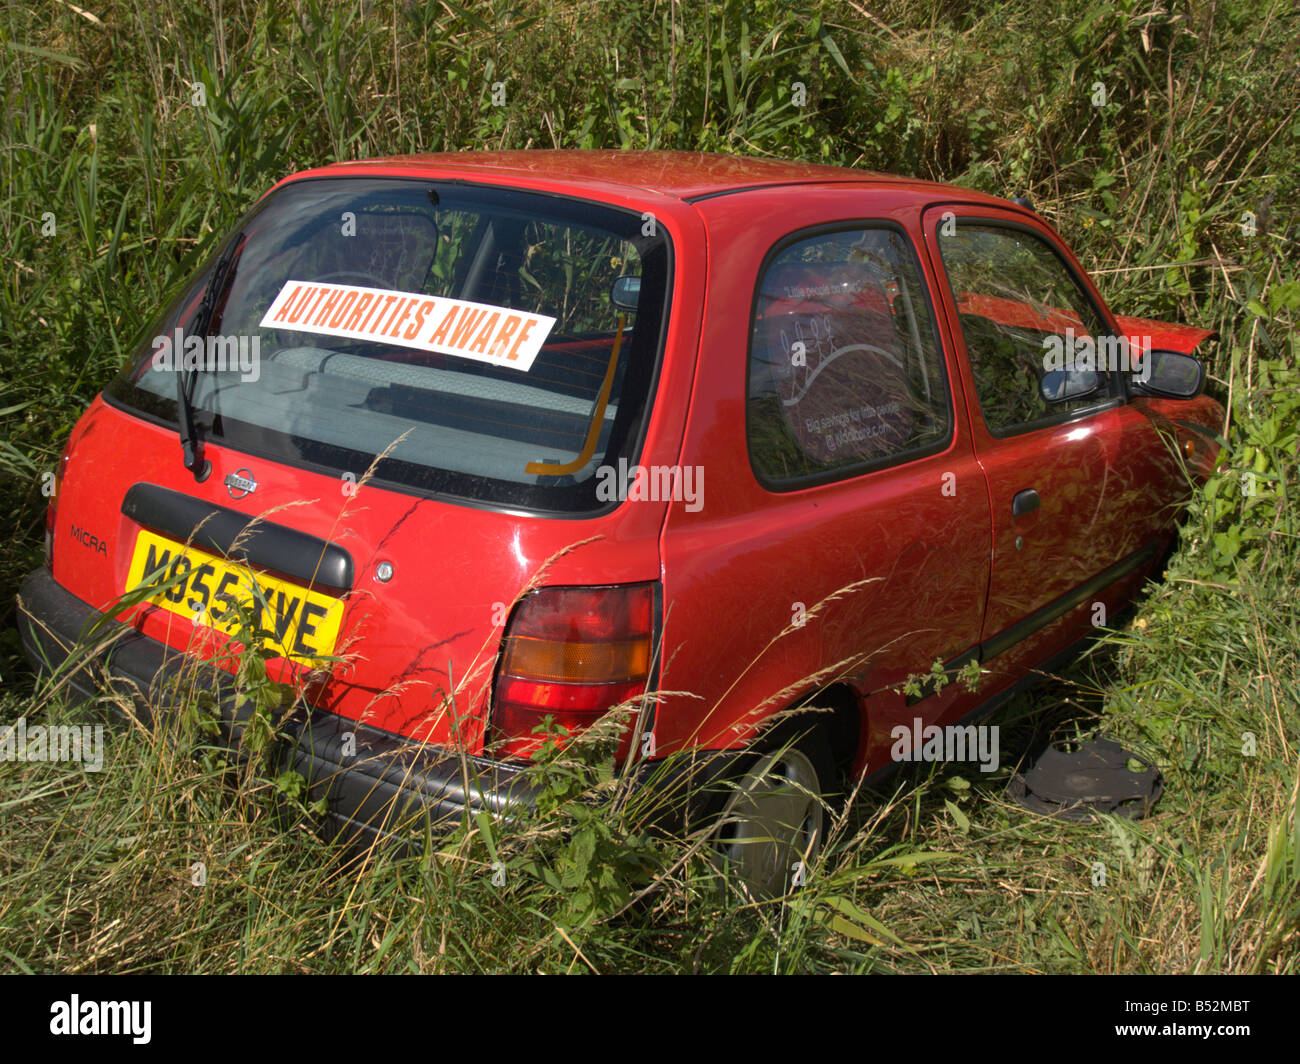 Buy Wrecked Car >> Road Traffic Car Accident Rta Skidded Off Road Red Car Field Ditch Stock Photo, Royalty Free ...